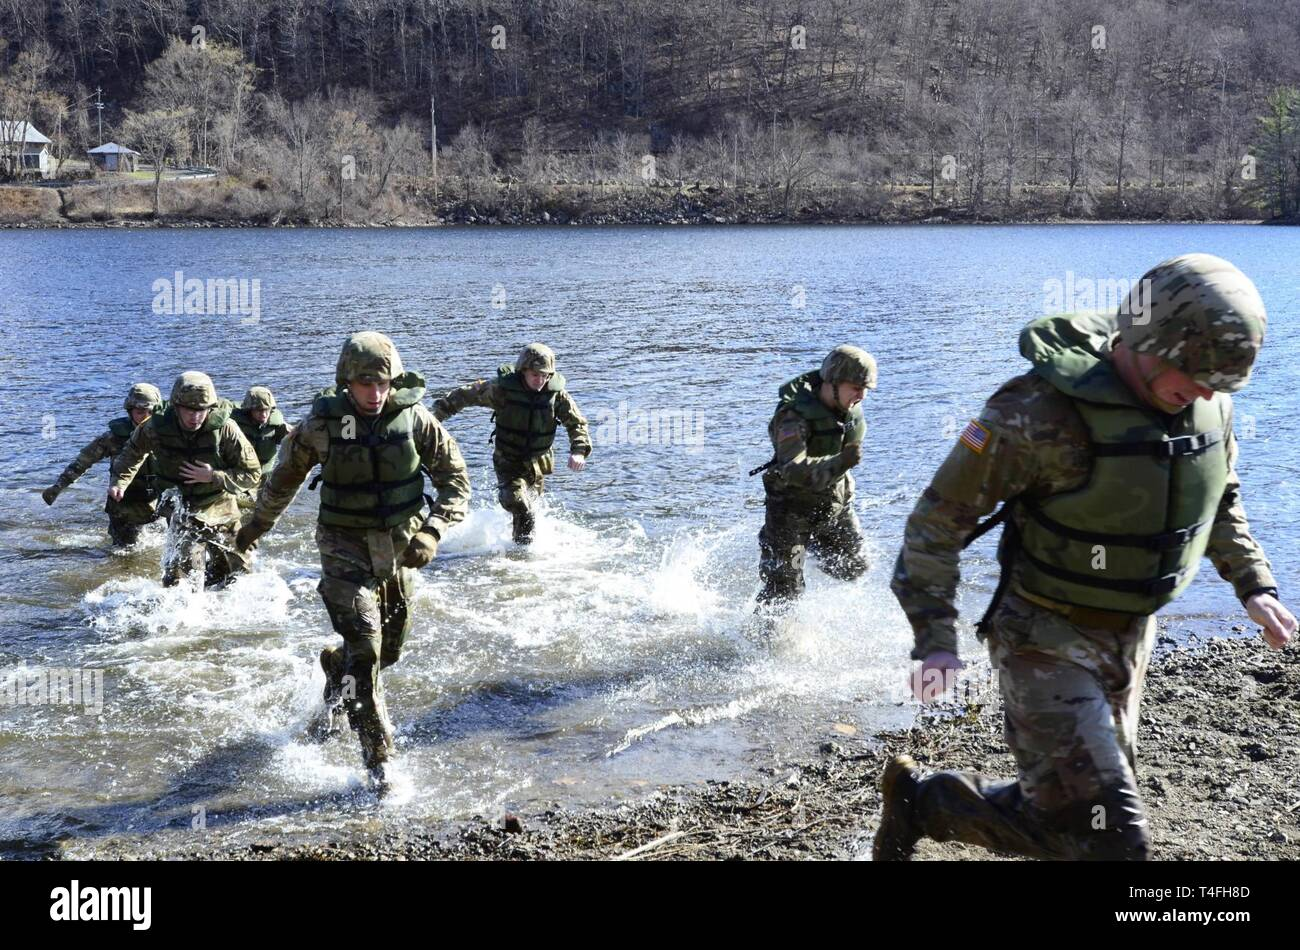 U.S. Army Reserve Officers' Training Corps Cadets from Lehigh University, Bethlehem, Pennsylvania run onto shore after testing the water depth of Stillwell Lake, West Point, New York during training in preparation for the U.S. Military Academy's 51st Sandhurst Military Skills Competition, April 12-13. Sandhurst, a premier international military academy competition which began in 1967, is a two-day, approximately 30-mile course filled with individual and squad-based events designed to promote military excellence of future leaders across the world. This year, 49 teams from more than a dozen coun Stock Photo